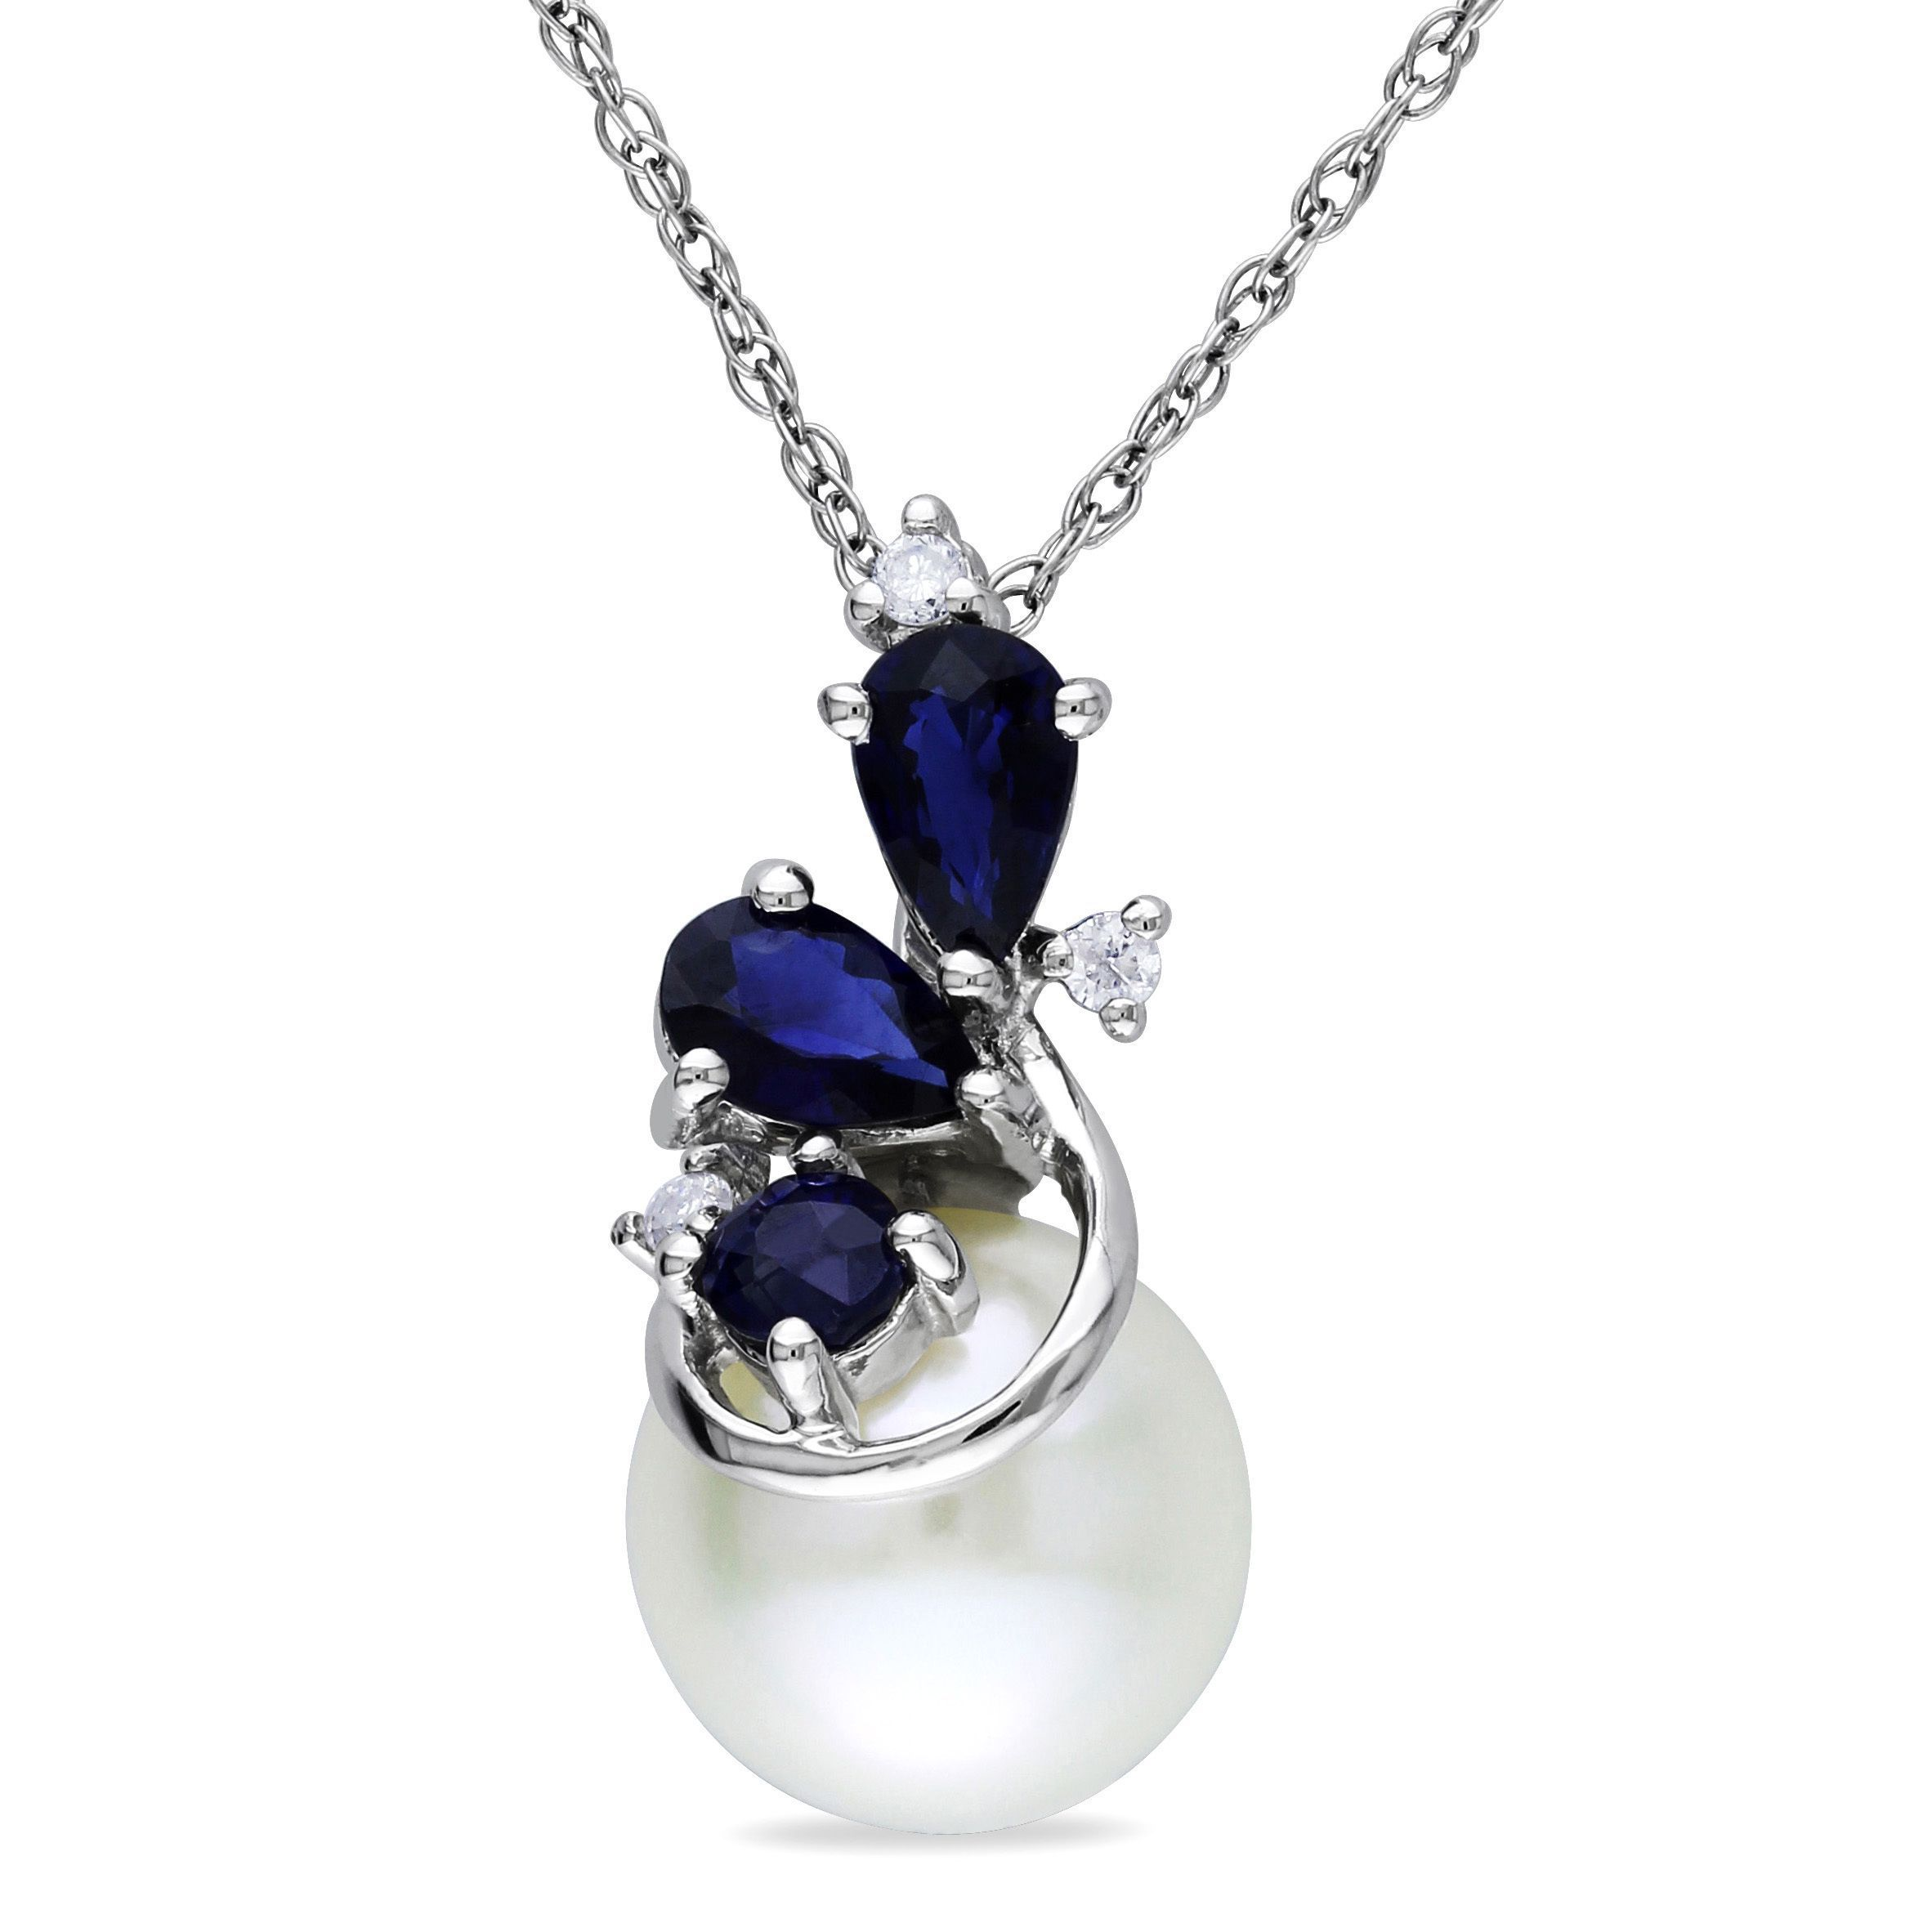 This dazzling necklace from the miadora collection features a